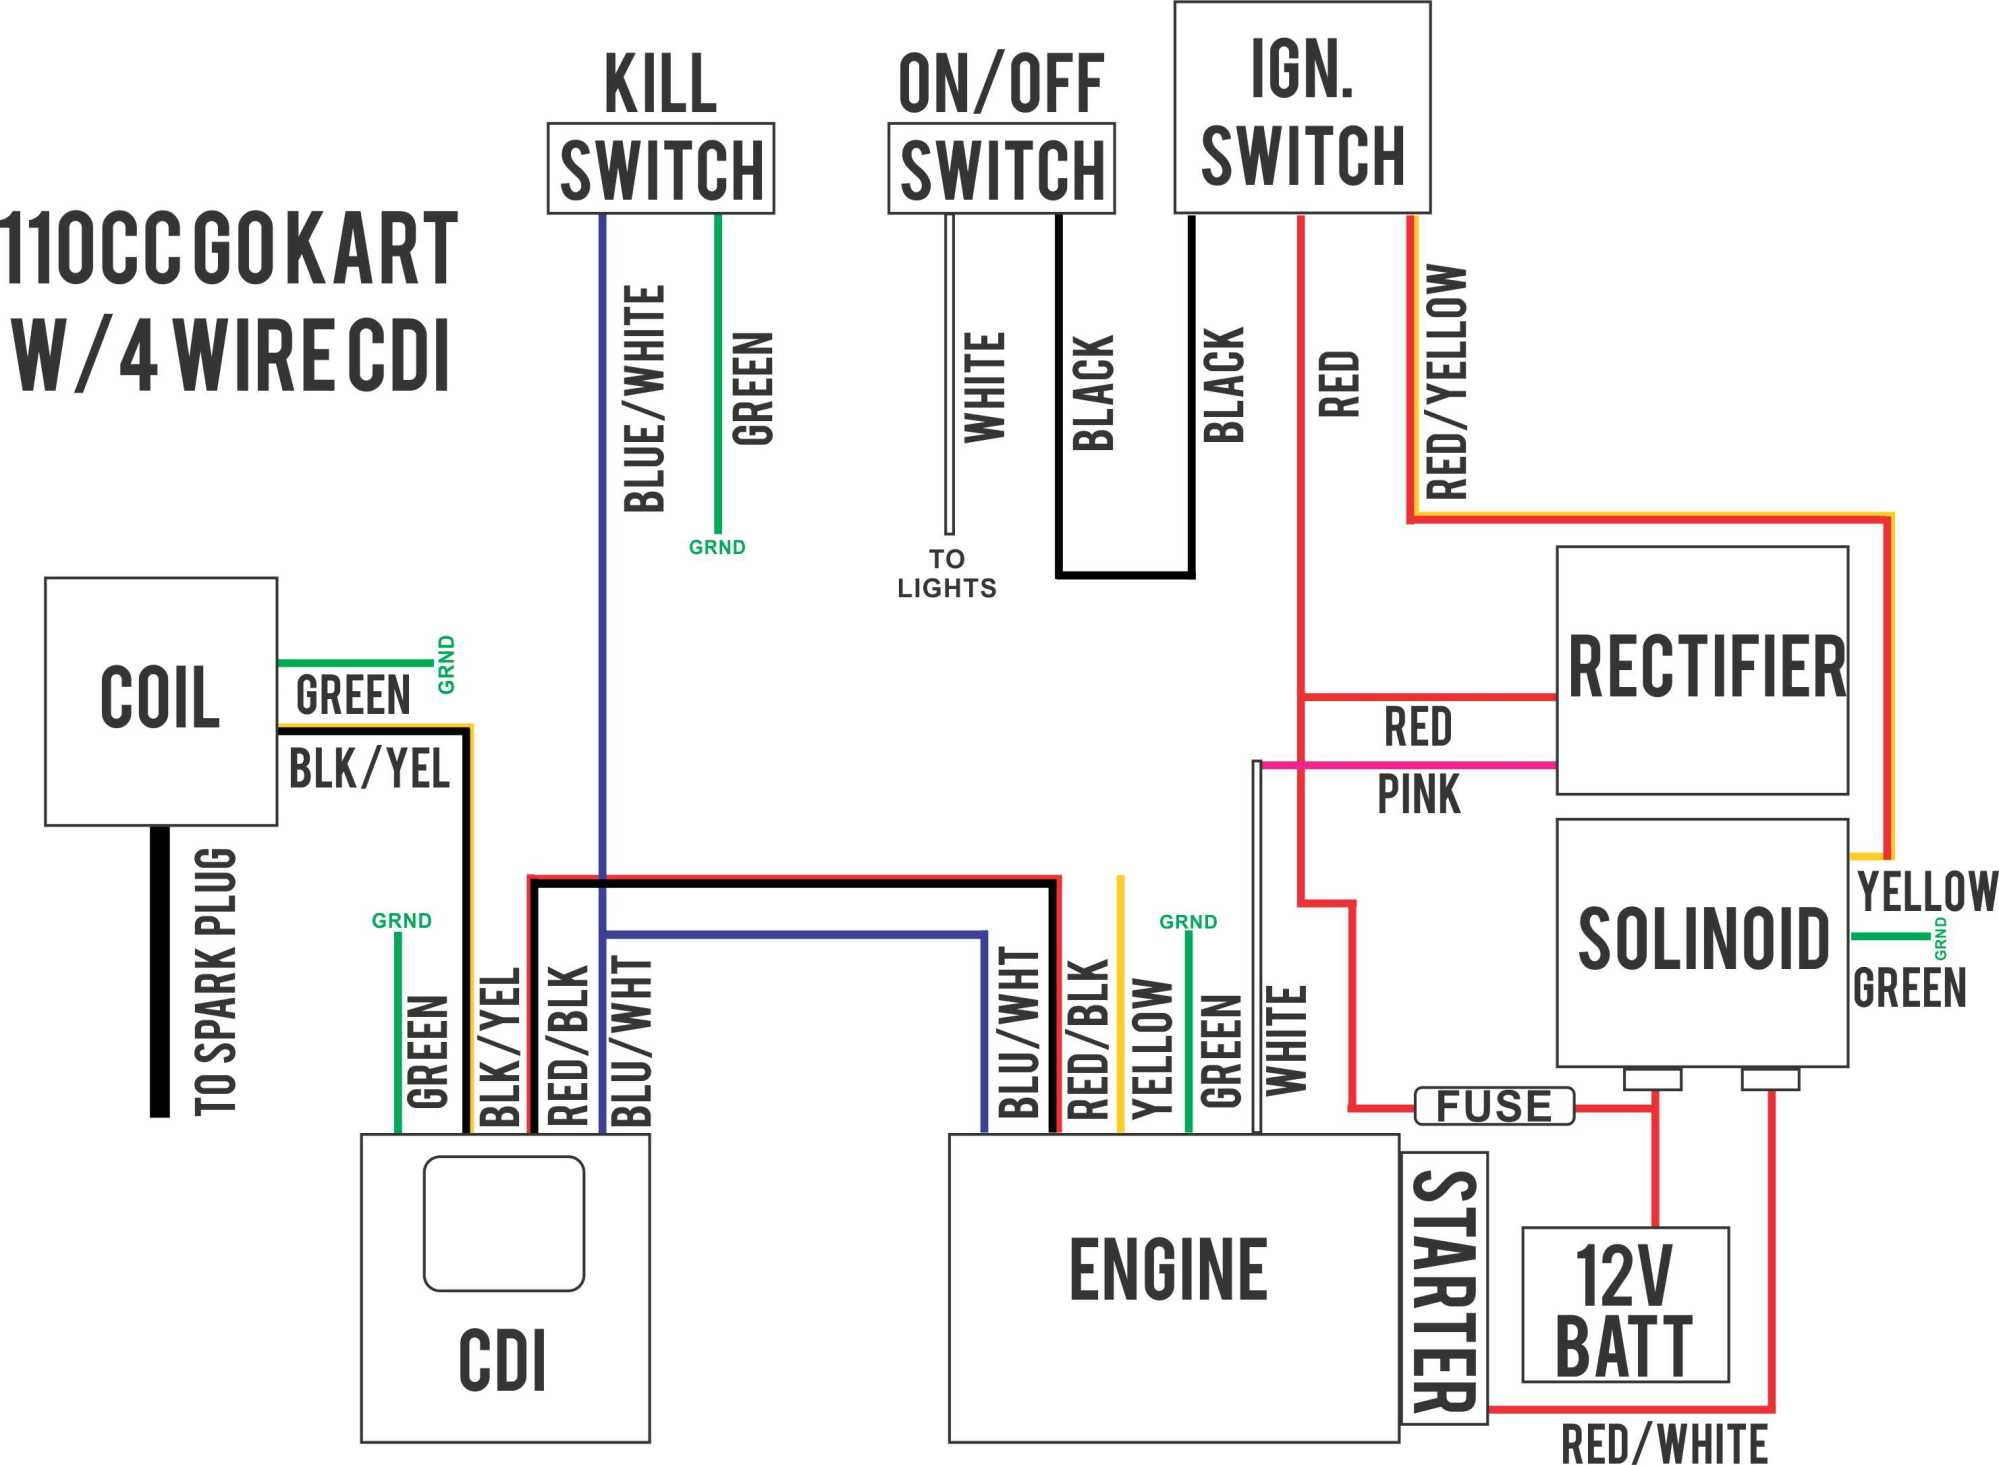 hight resolution of 110 atv stator wiring diagram 2013 wiring diagram features 110 atv stator wiring diagram 2013